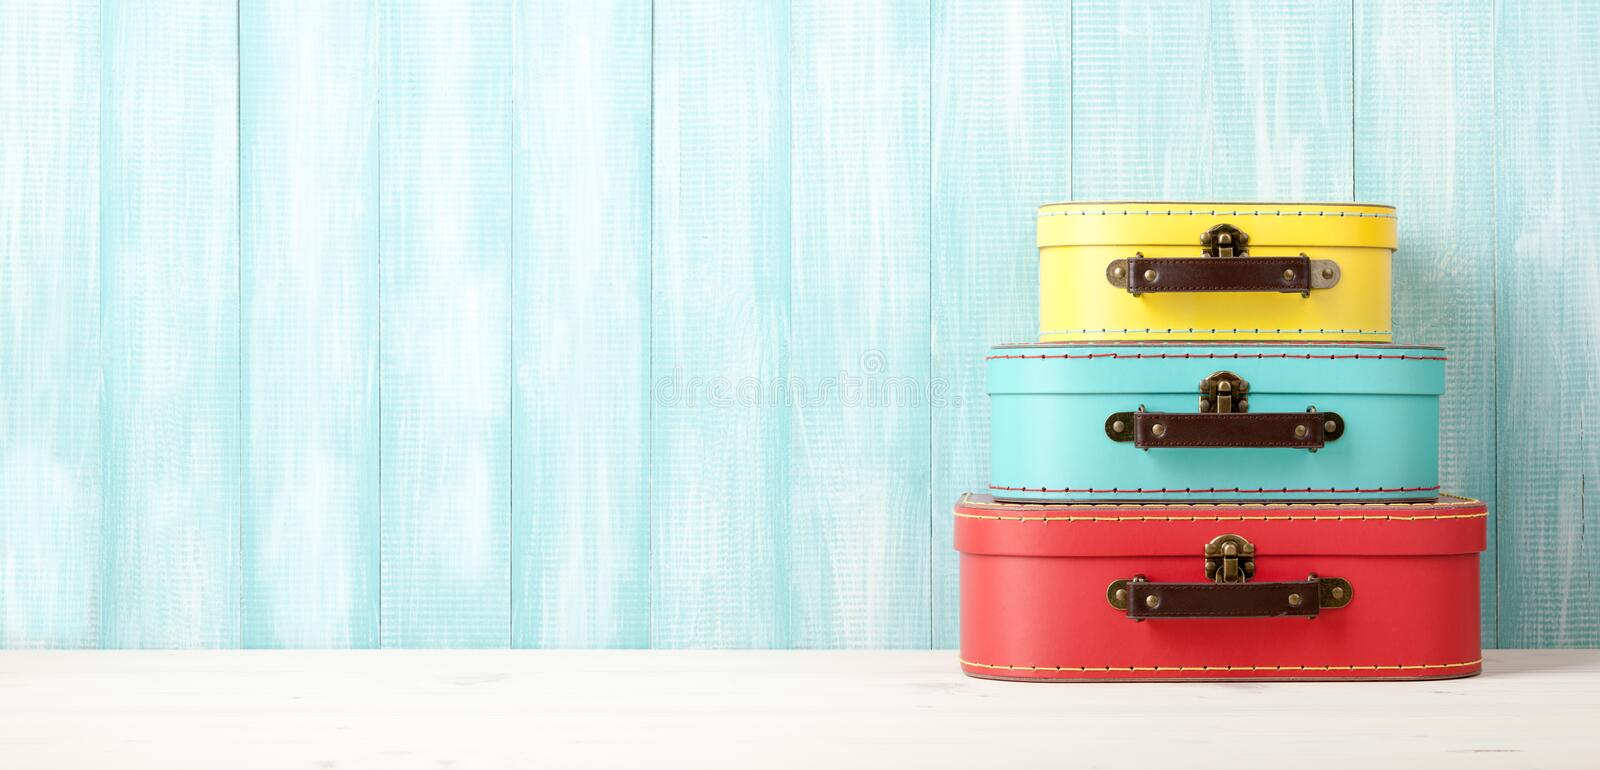 Travel concept with retro style suitcases on blue wooden background royalty free stock photography